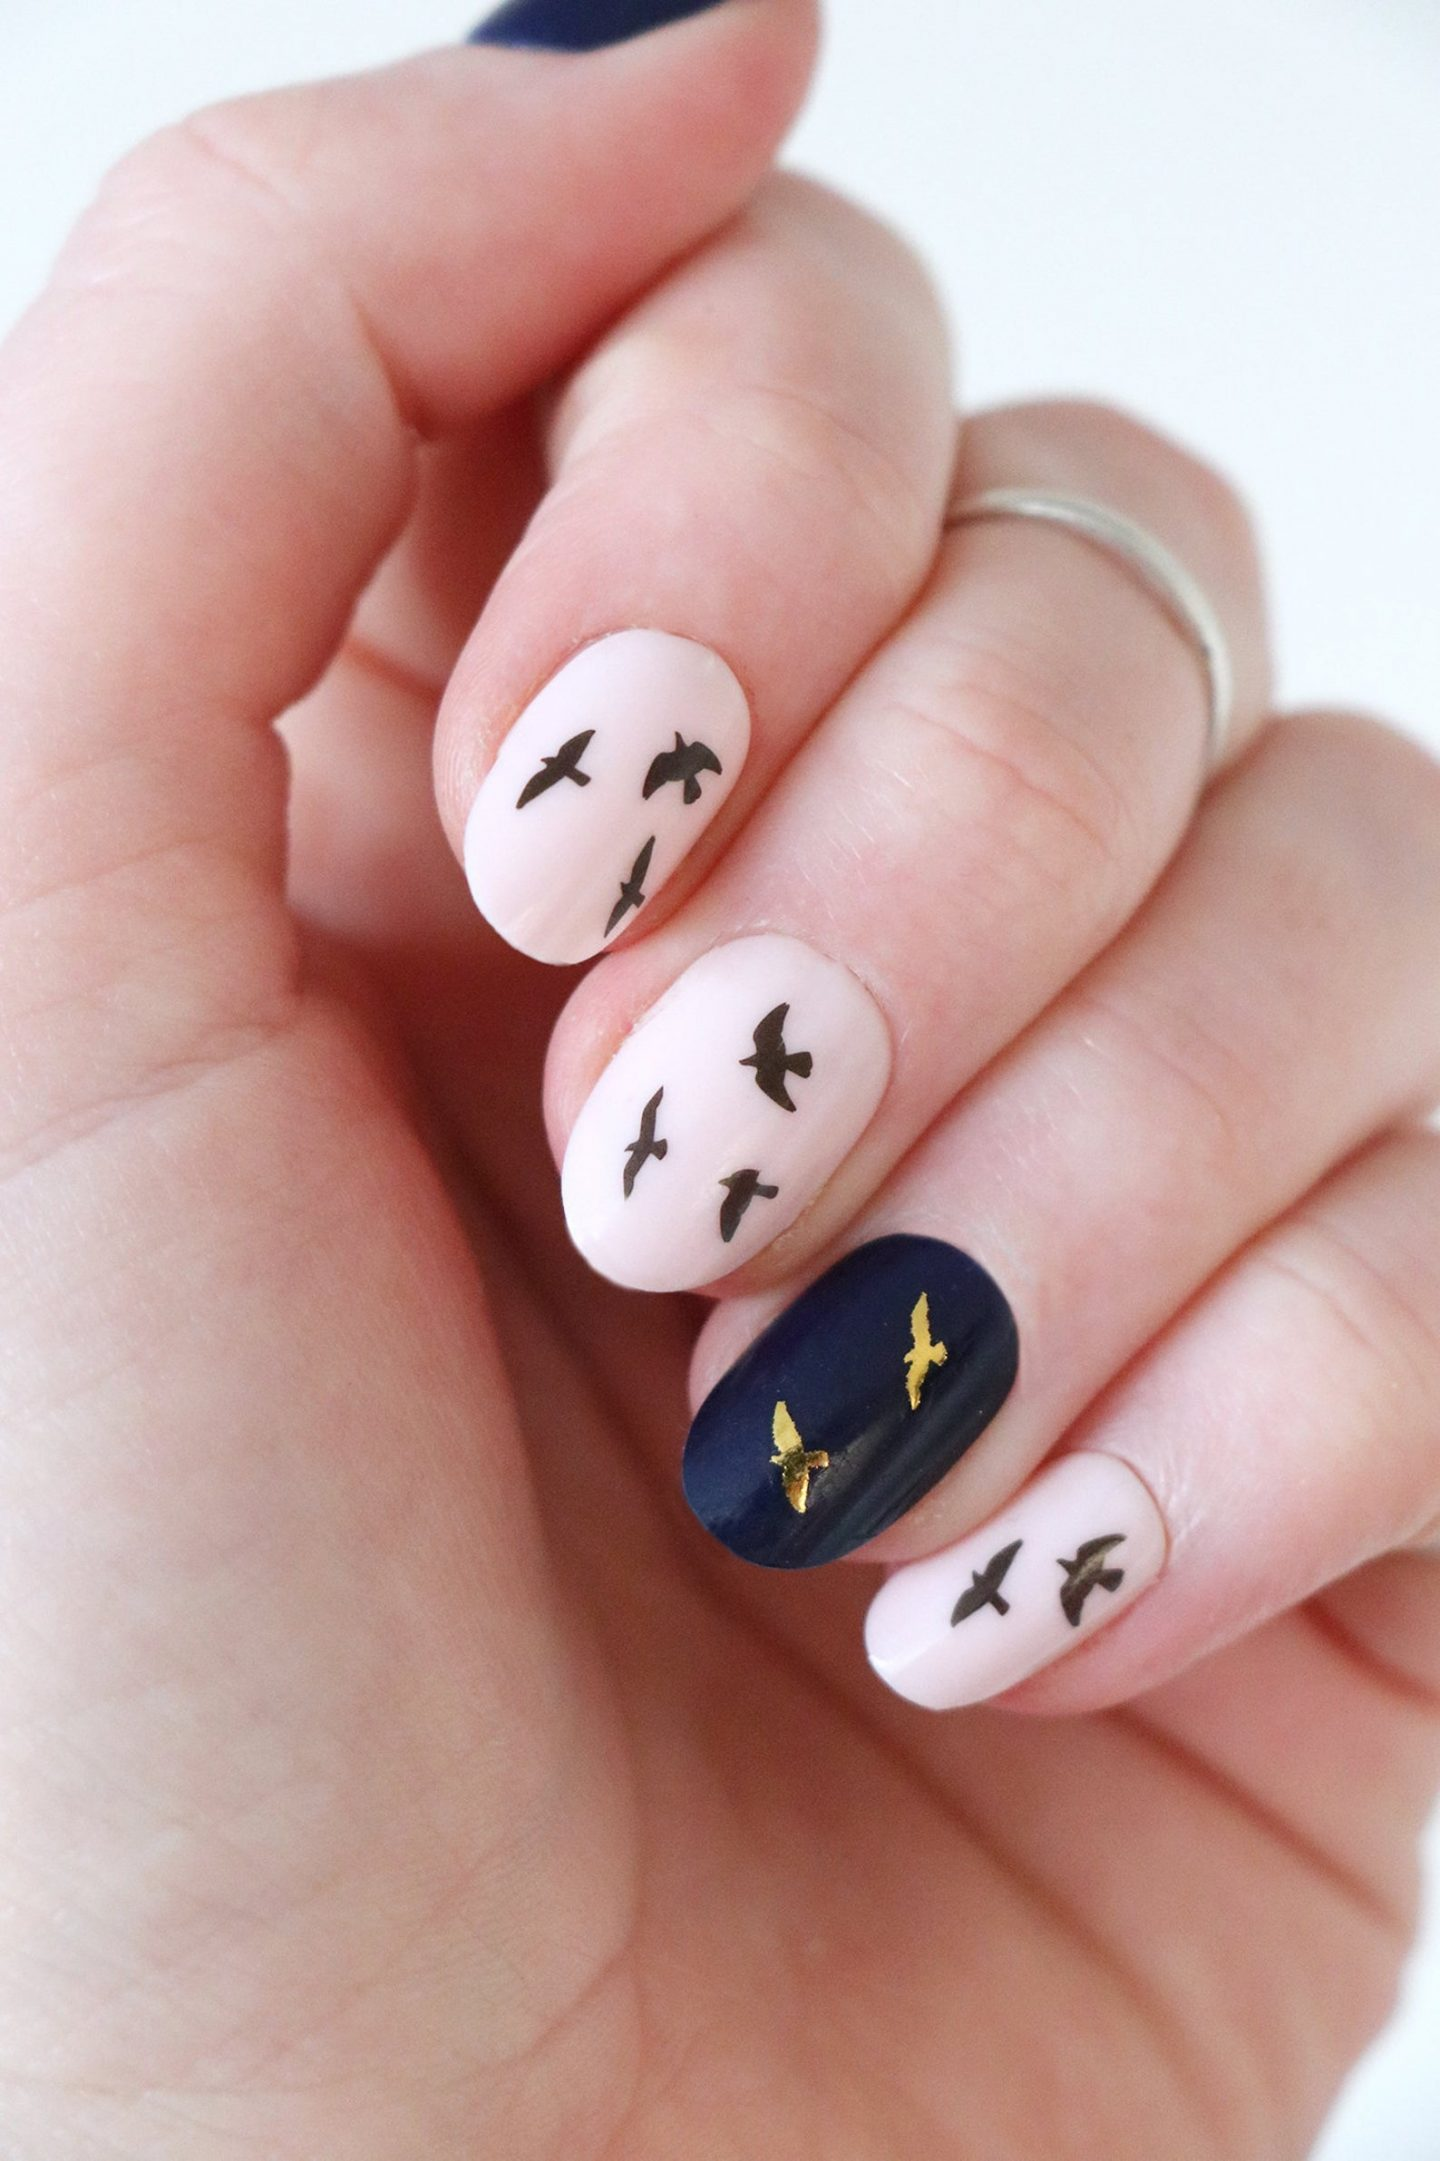 Cute light pink and navy blue short nails with nail art